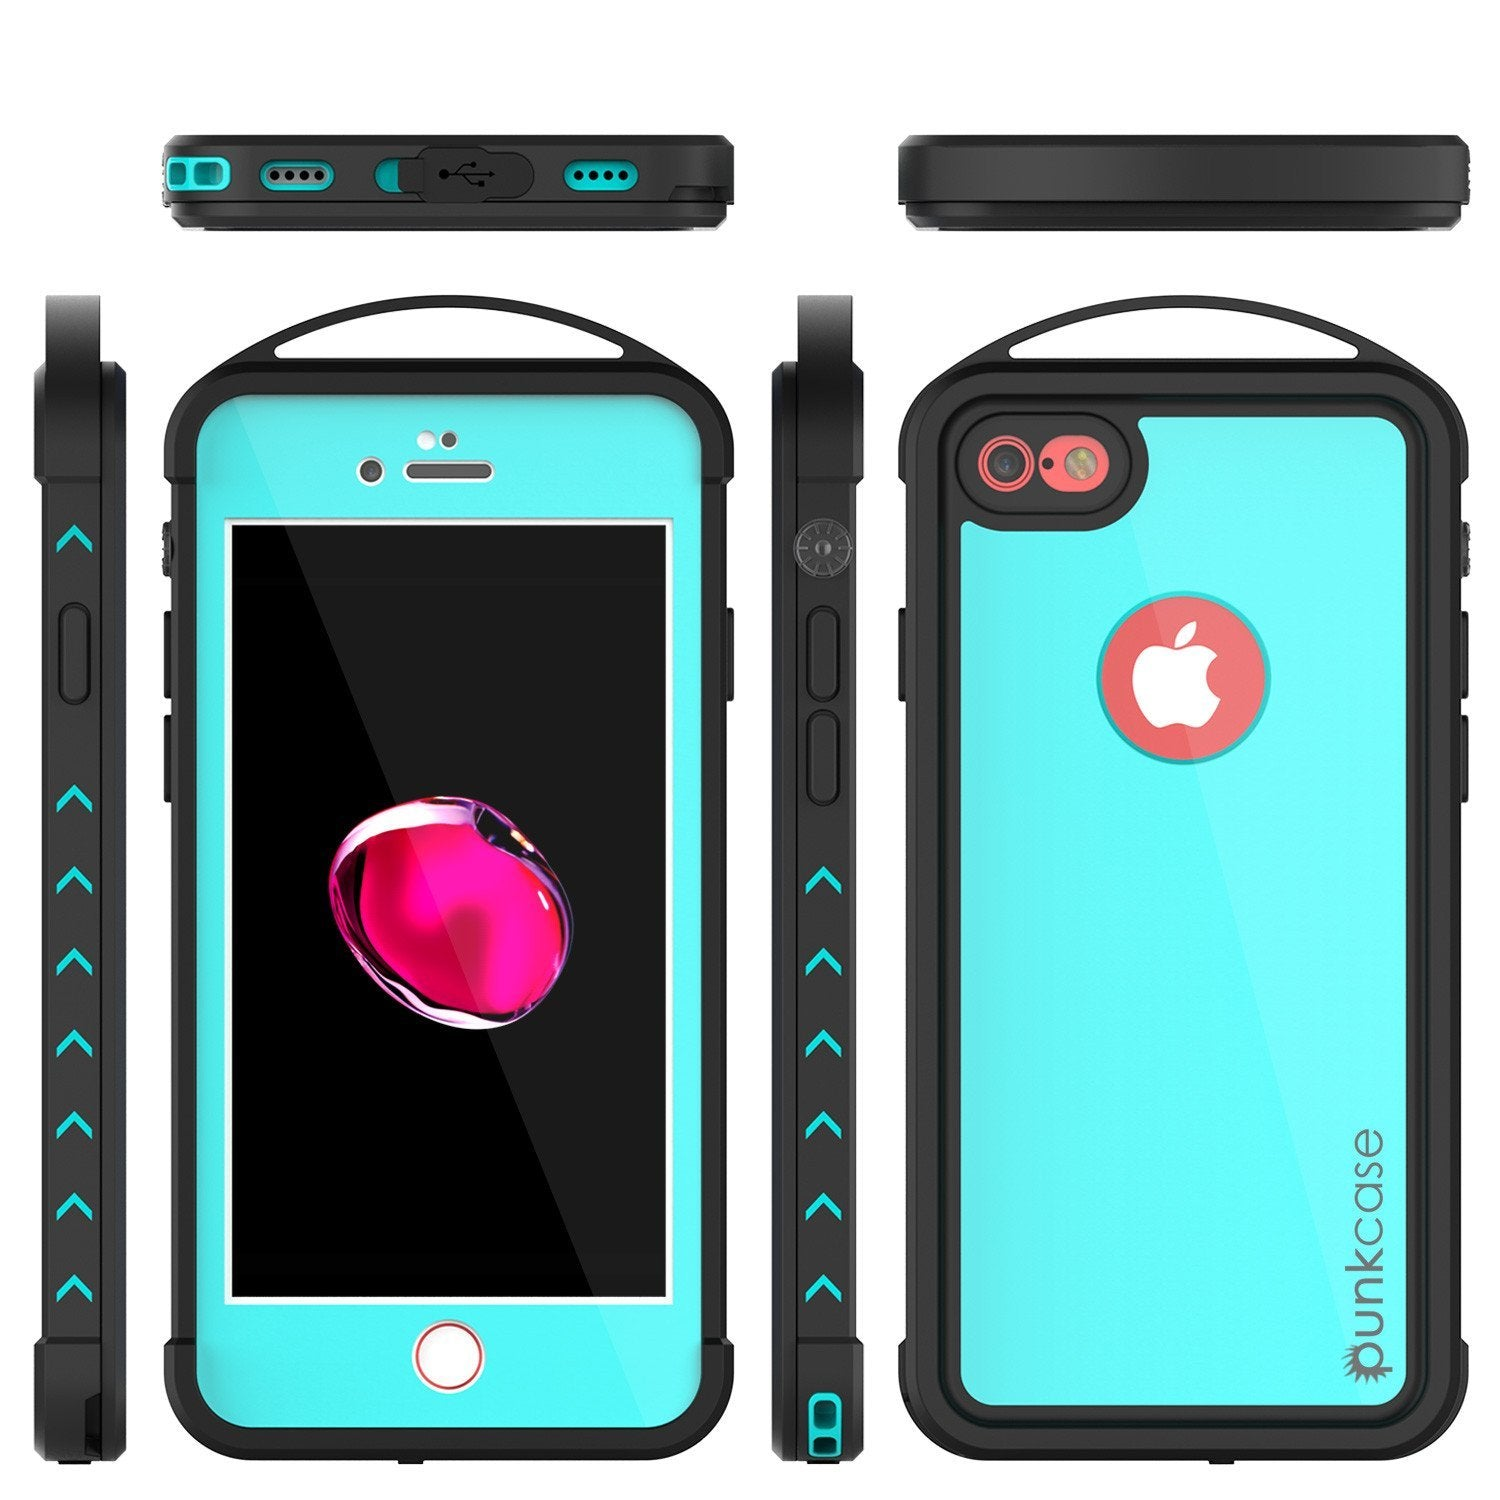 iPhone 8 Waterproof Case, Punkcase ALPINE Series, Teal | Heavy Duty Armor Cover - PunkCase NZ